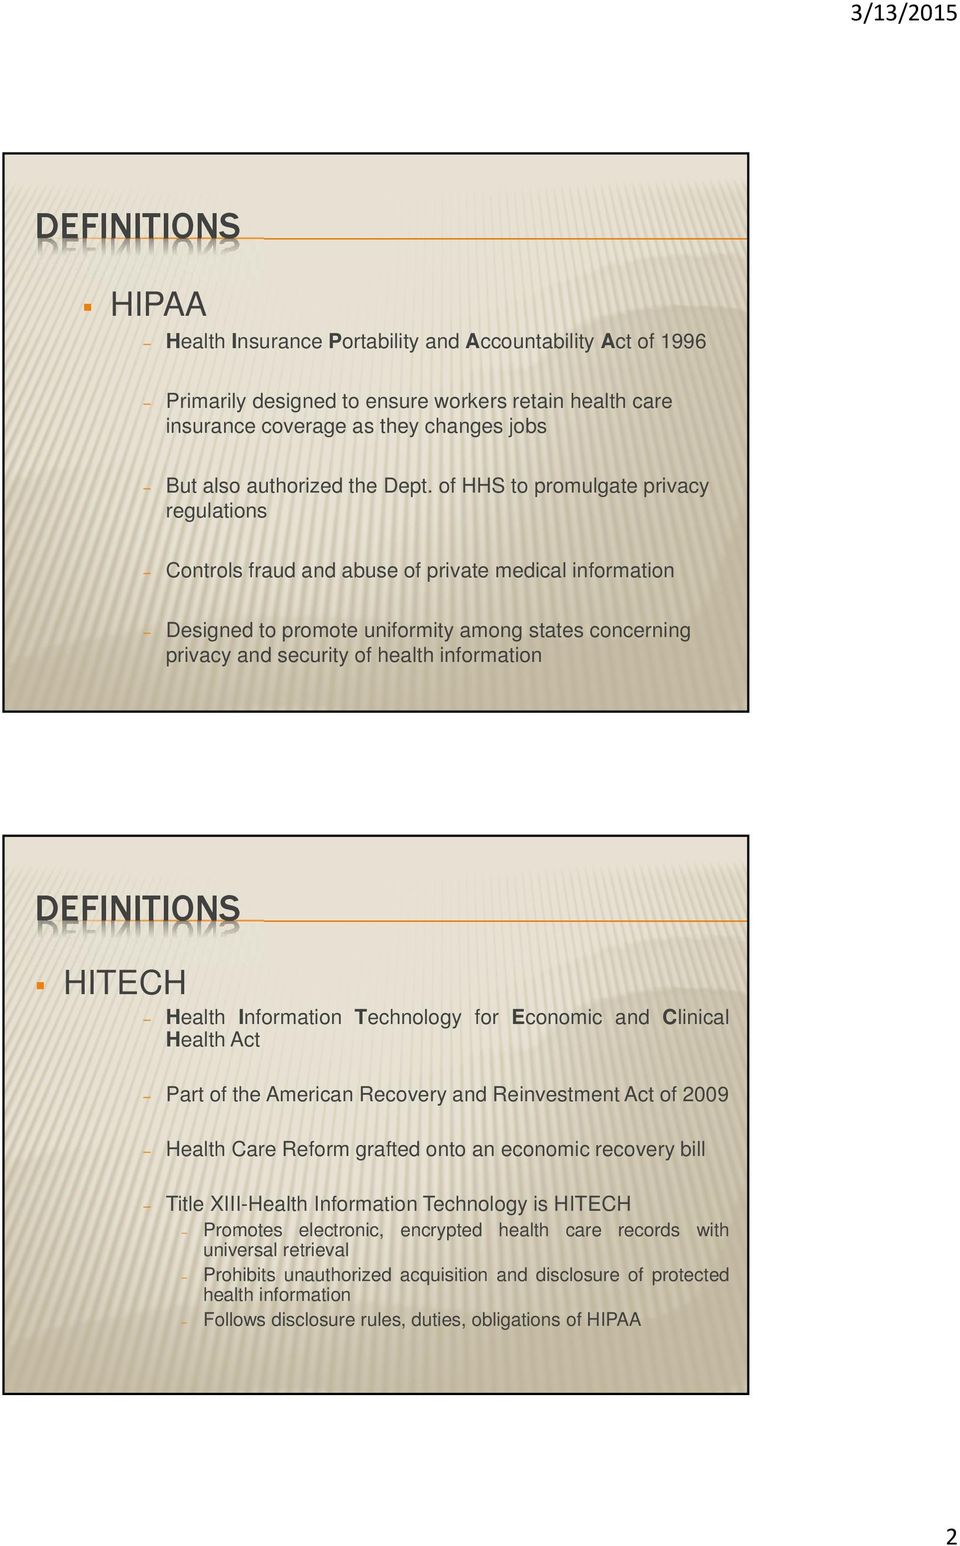 information DEFINITIONS HITECH Health Information Technology for Economic and Clinical Health Act Part of the American Recovery and Reinvestment Act of 2009 Health Care Reform grafted onto an